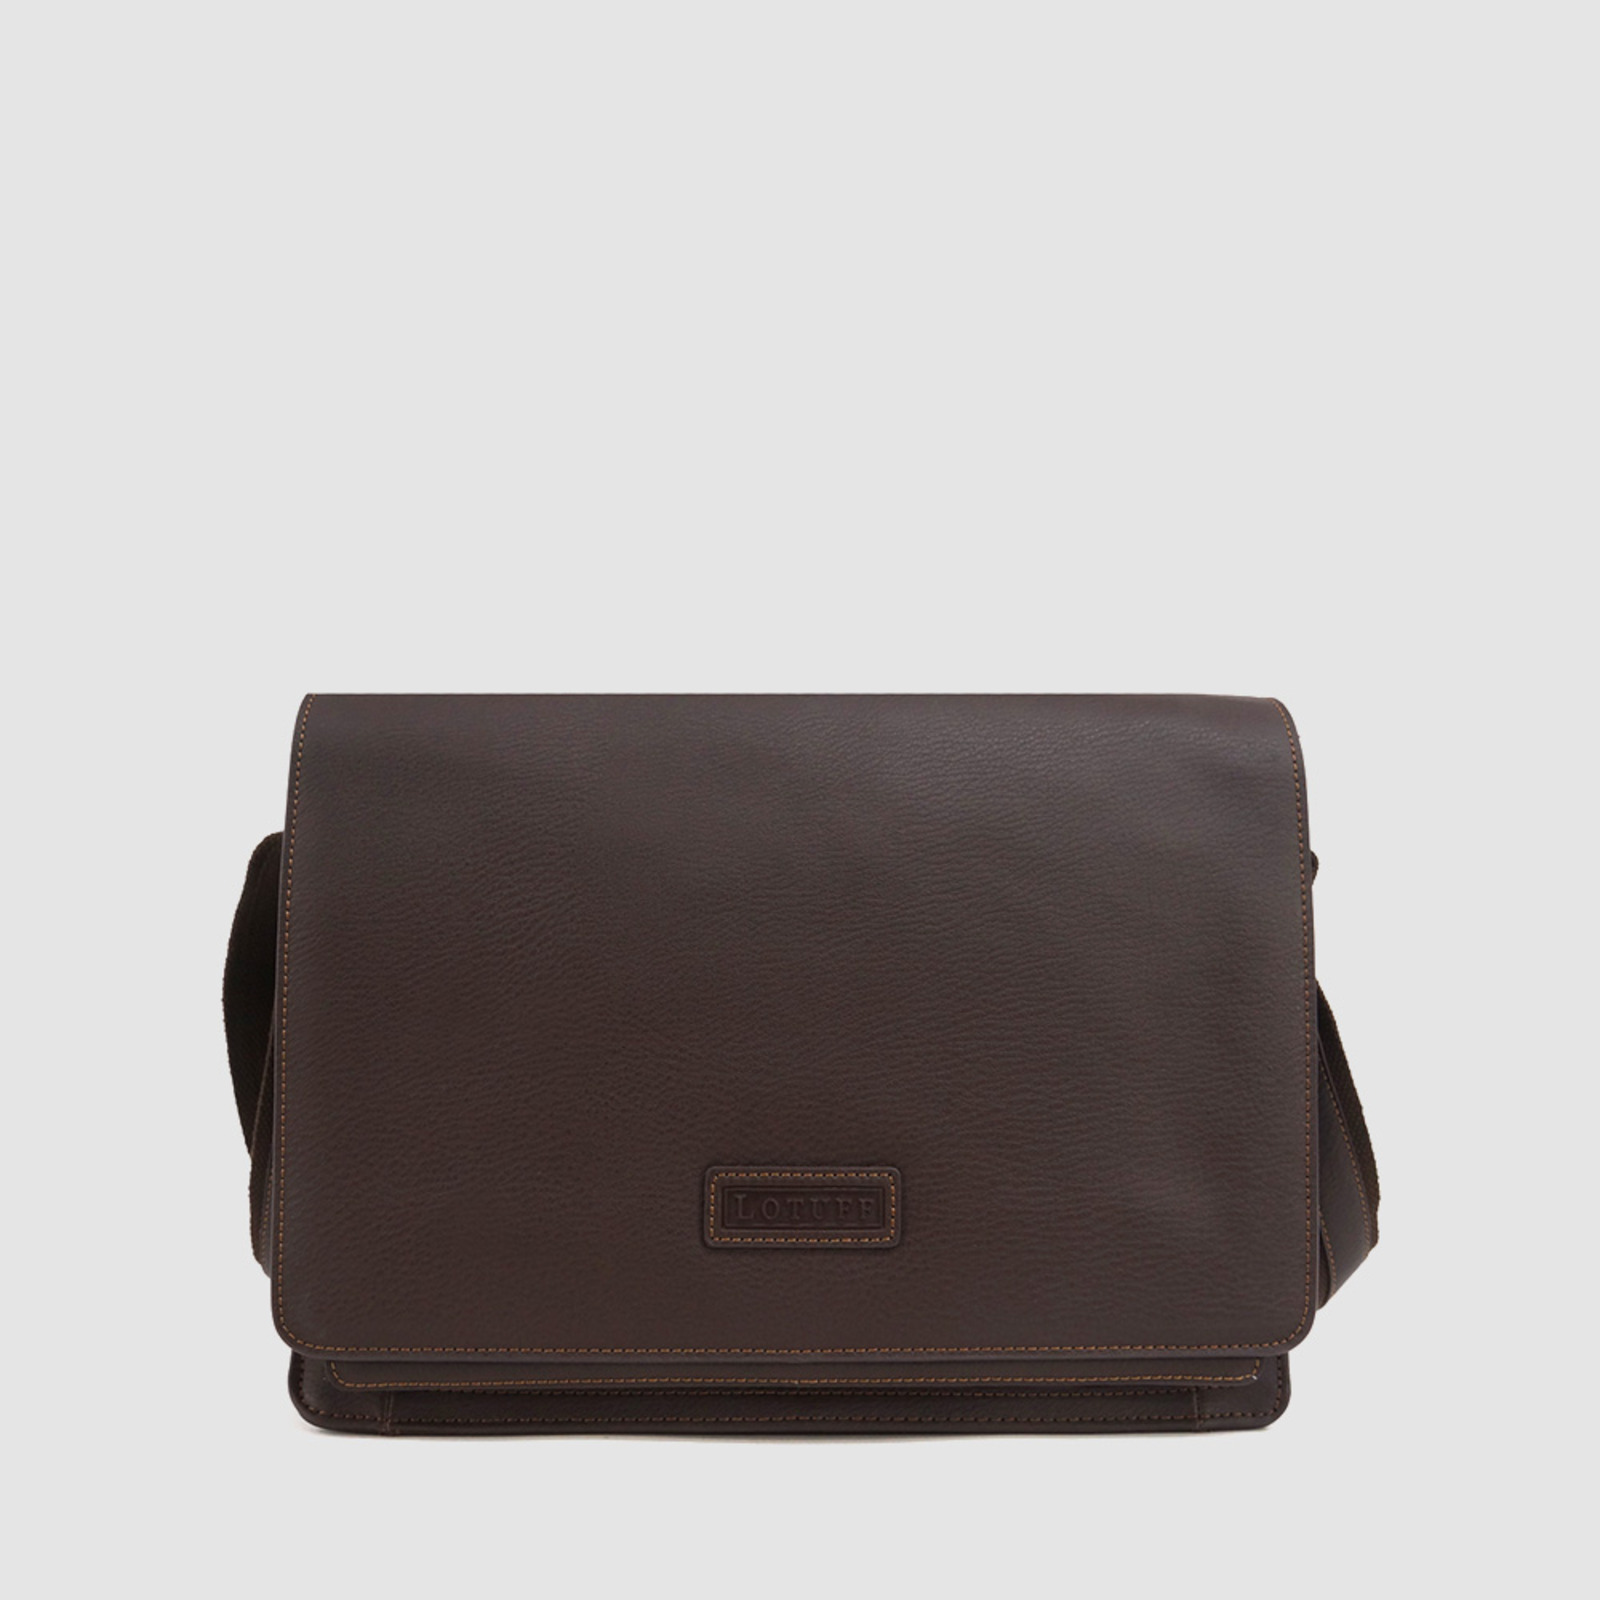 LO-7397 DBR (DEEP BROWN)